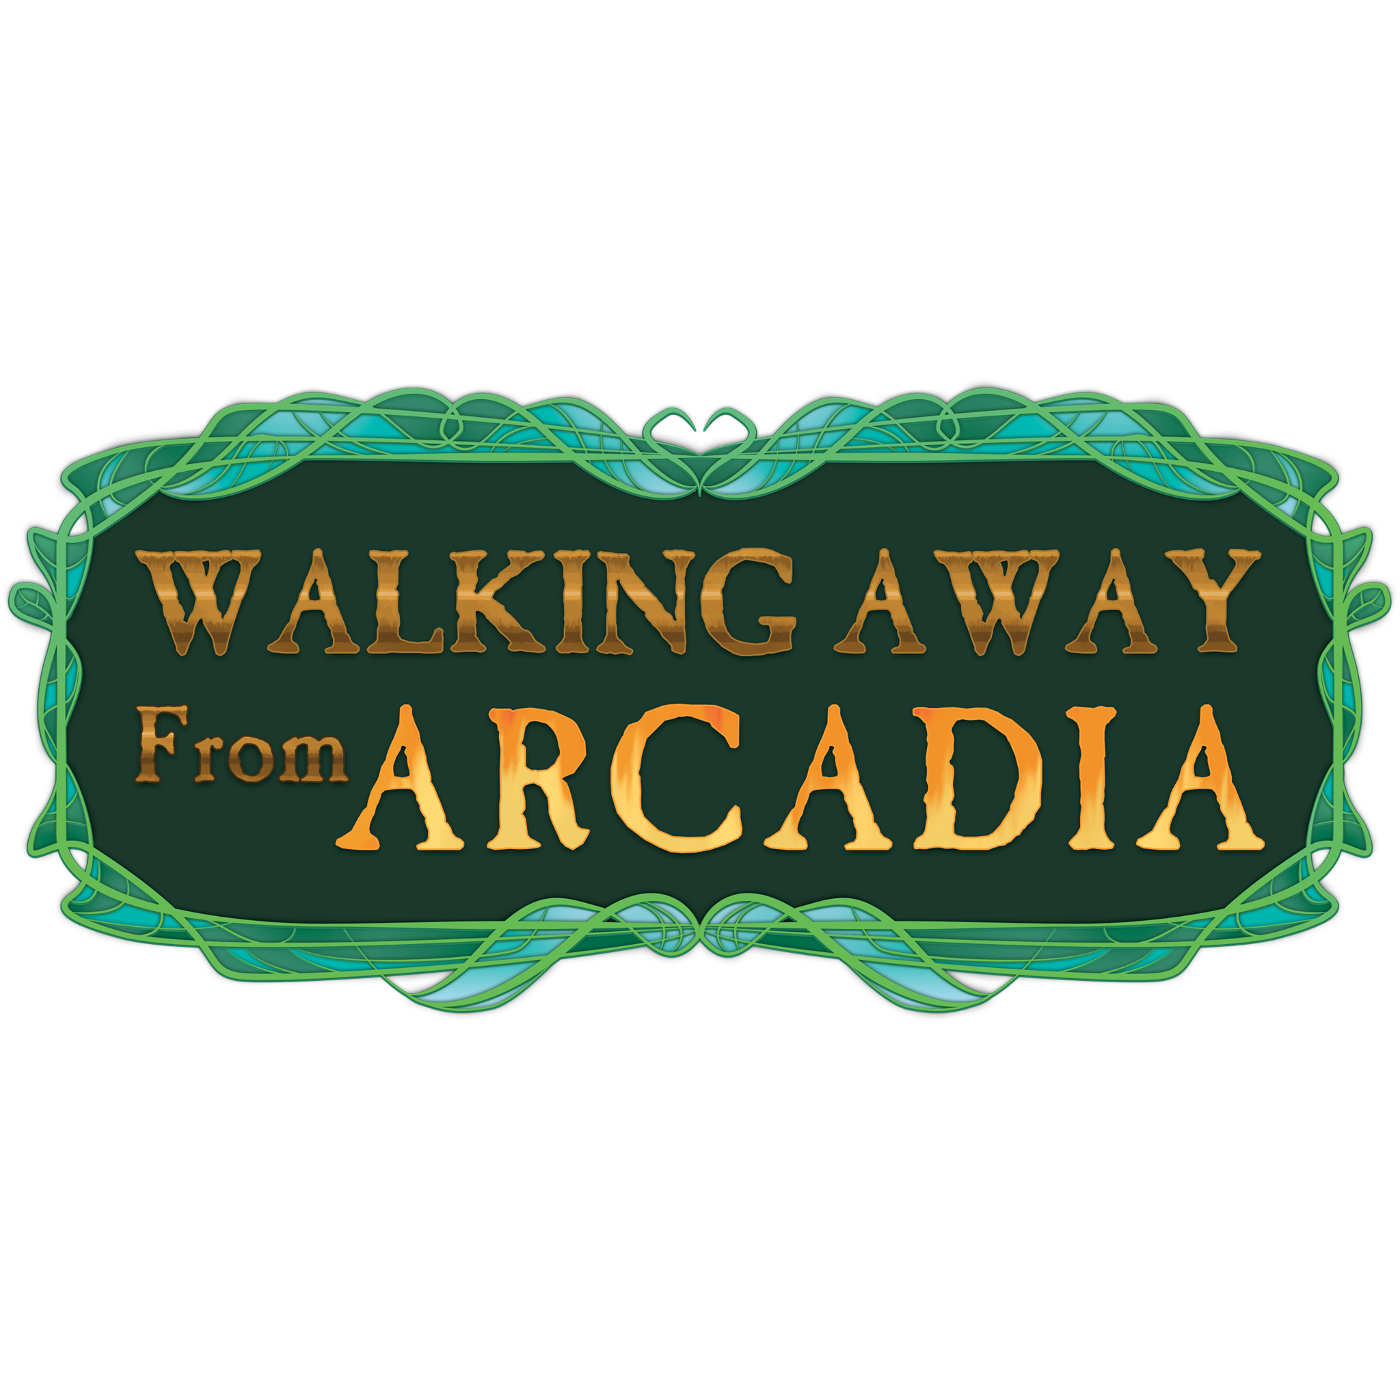 Walking Away From Arcadia